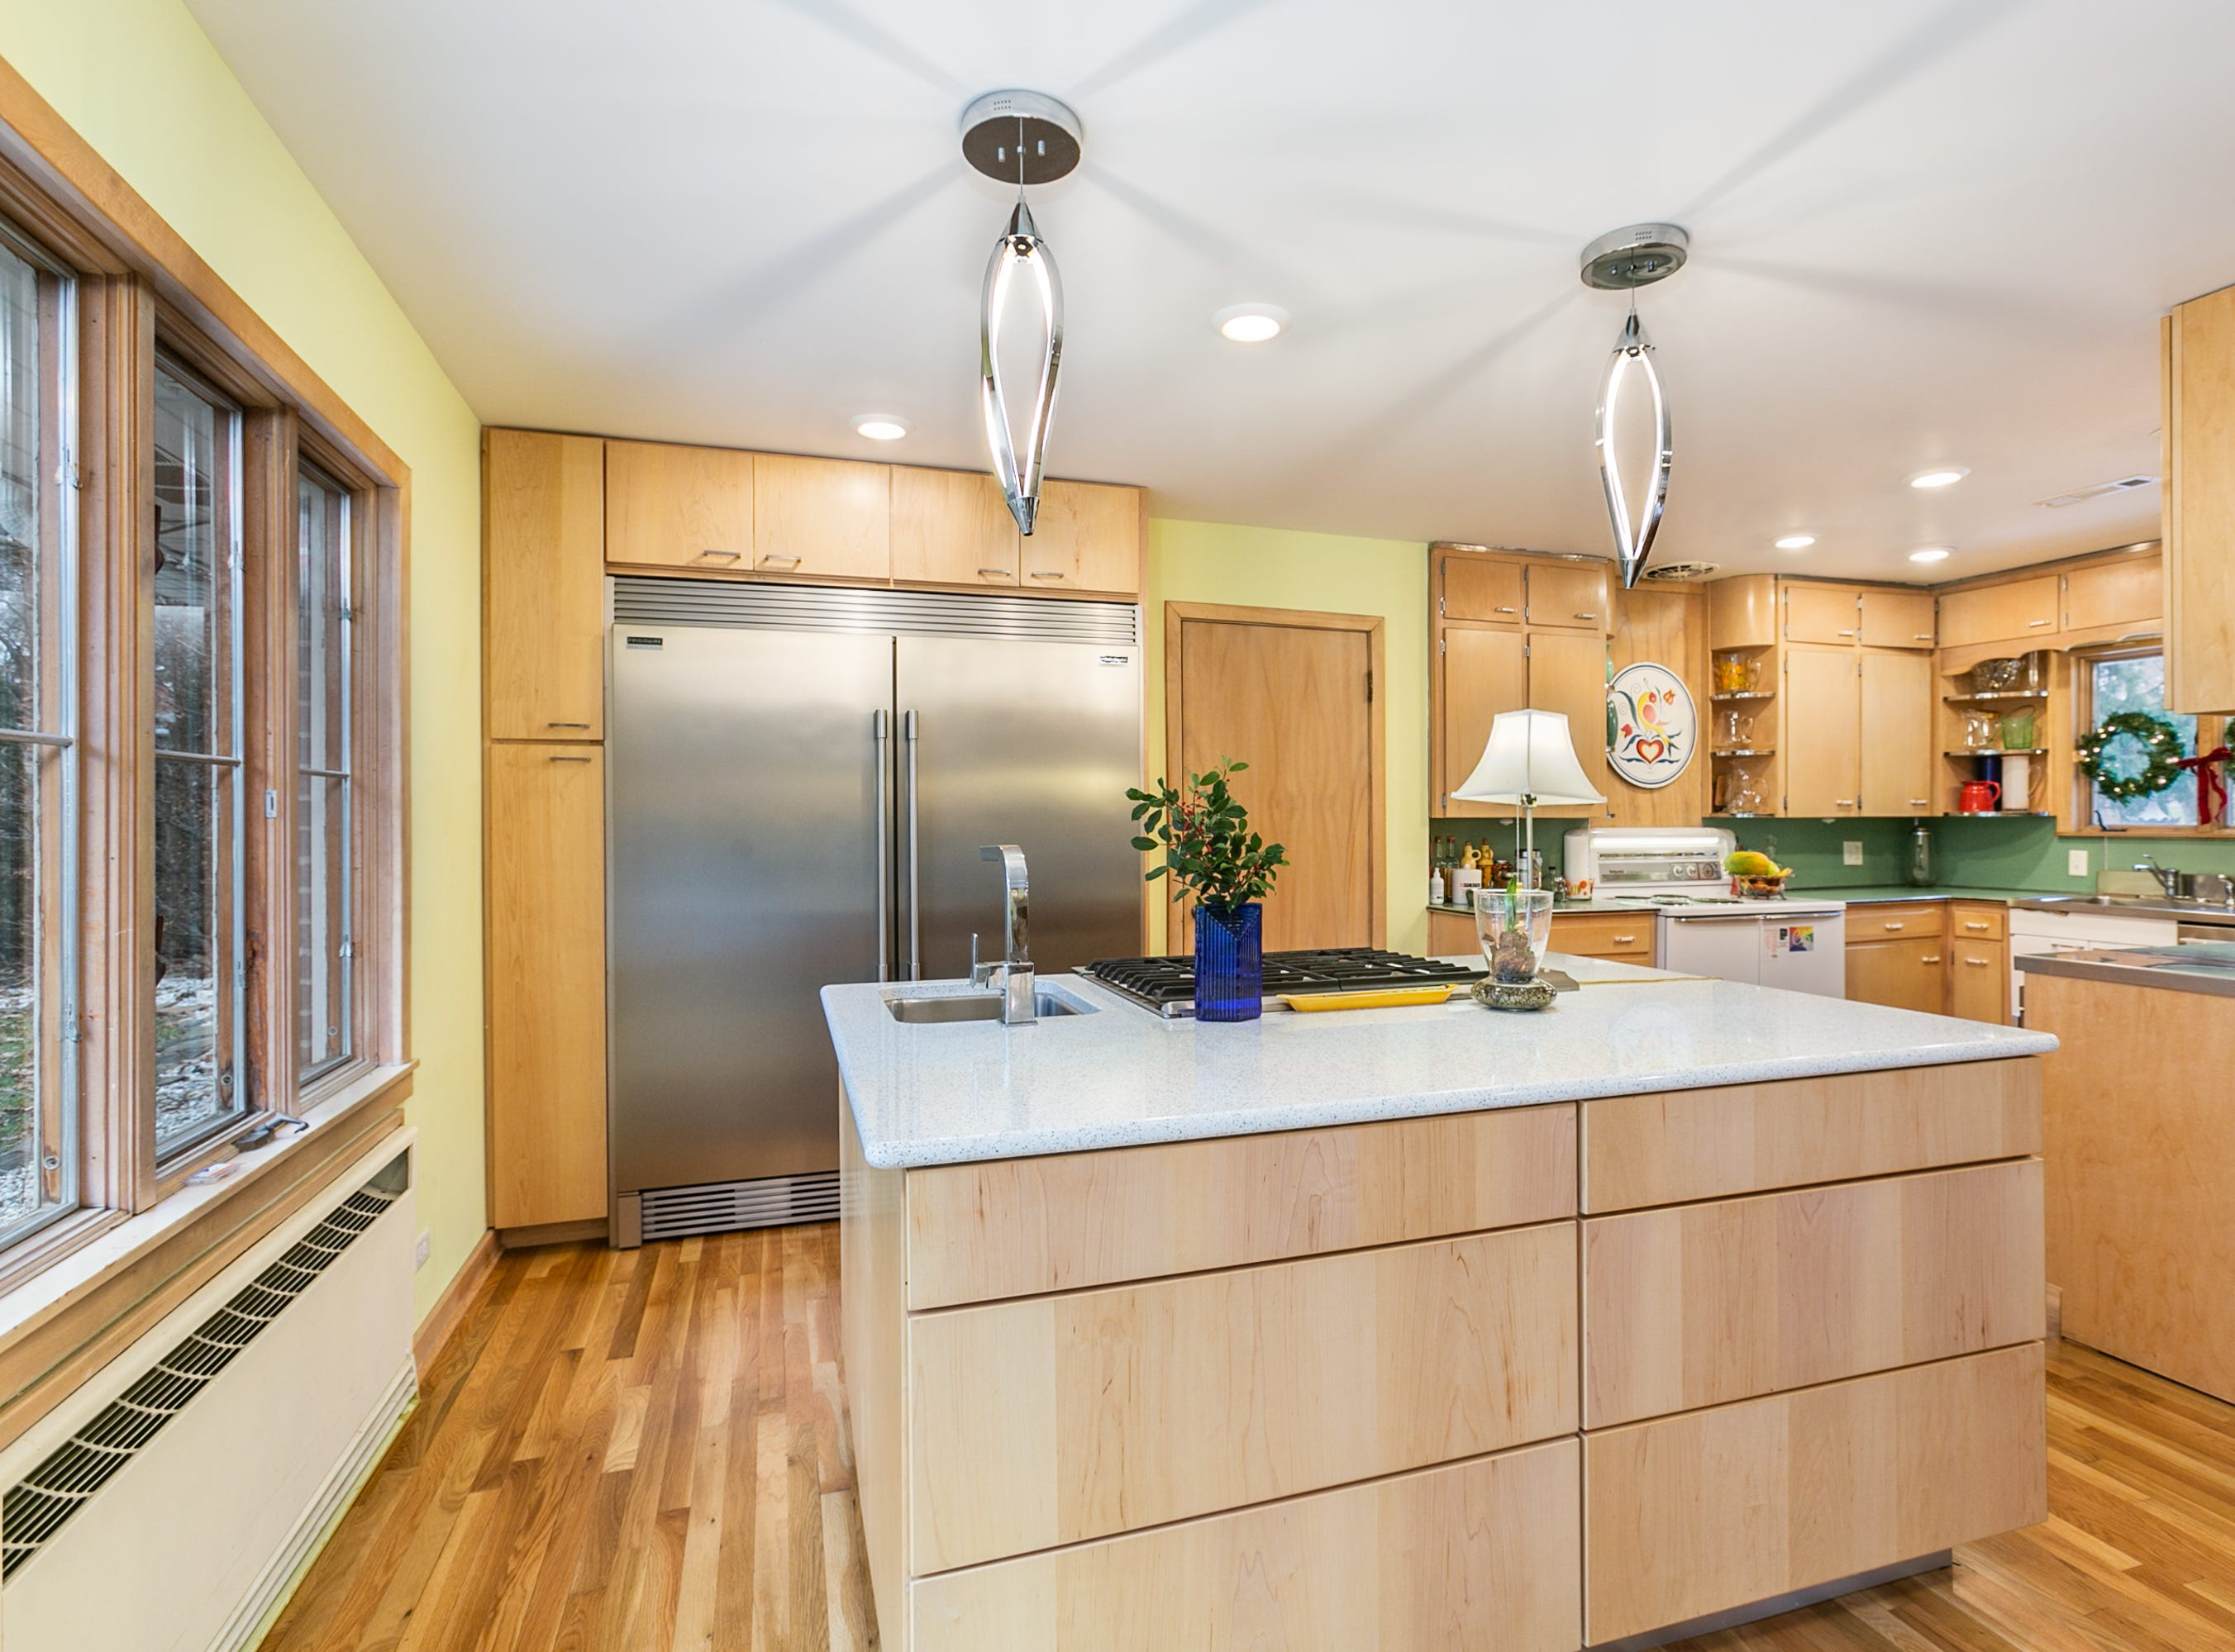 Jeff and Kyaw opted for a professional-grade counter-depth refrigerator and freezer unit. Kyaw has cooked professionally and the two entertain extensively. Jeff says they have neighbors over every Friday for a get-together.